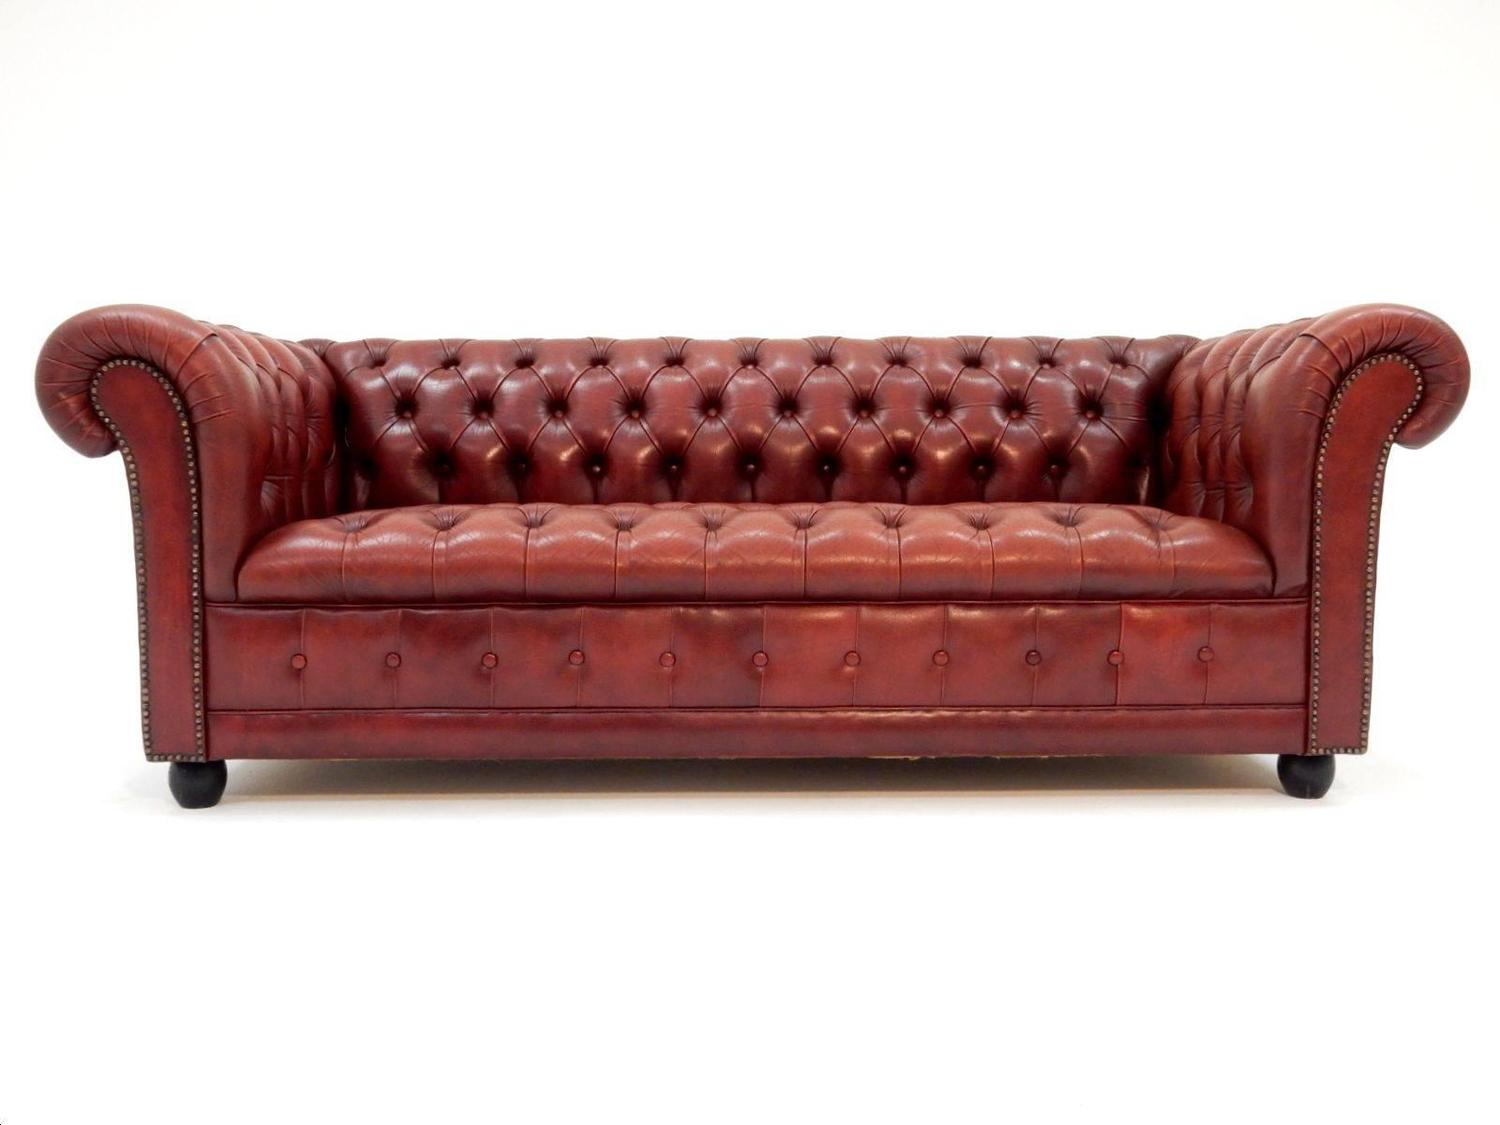 oxblood red chesterfield sofa dfs leather sofas reviews fabulous tufted british